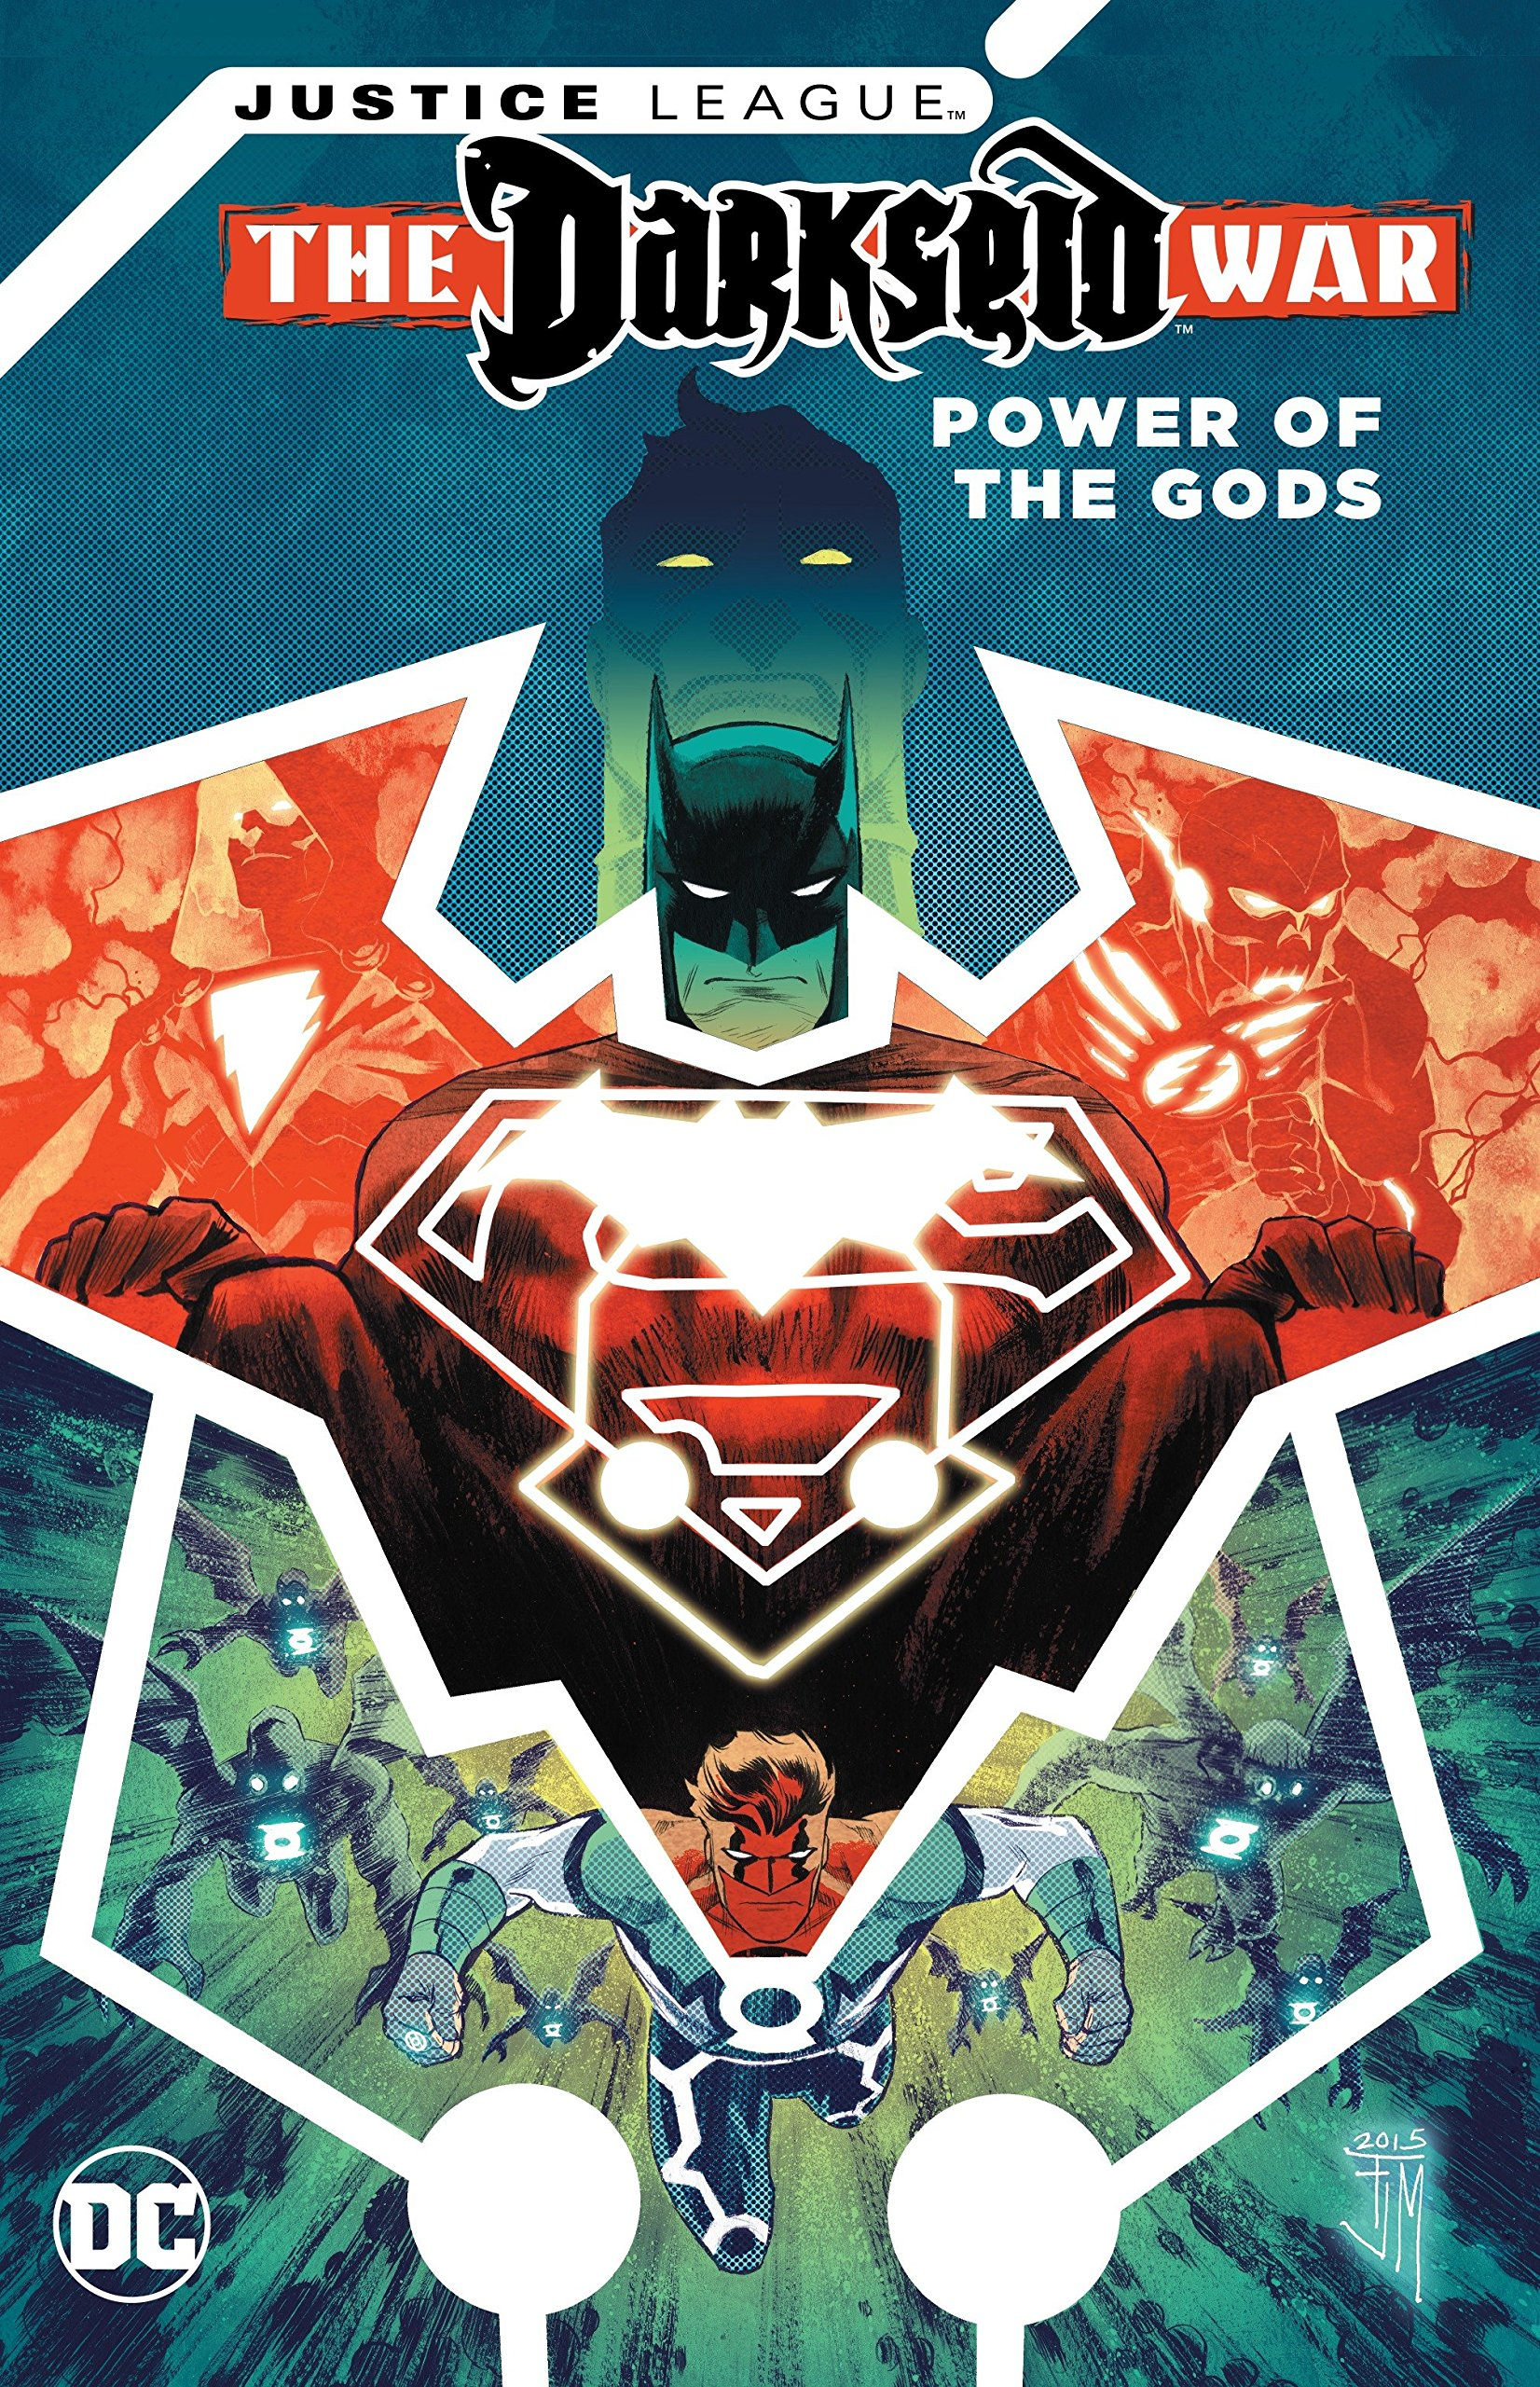 Power of the Gods Hardcover Graphic Novel New Justice League Darkseid War